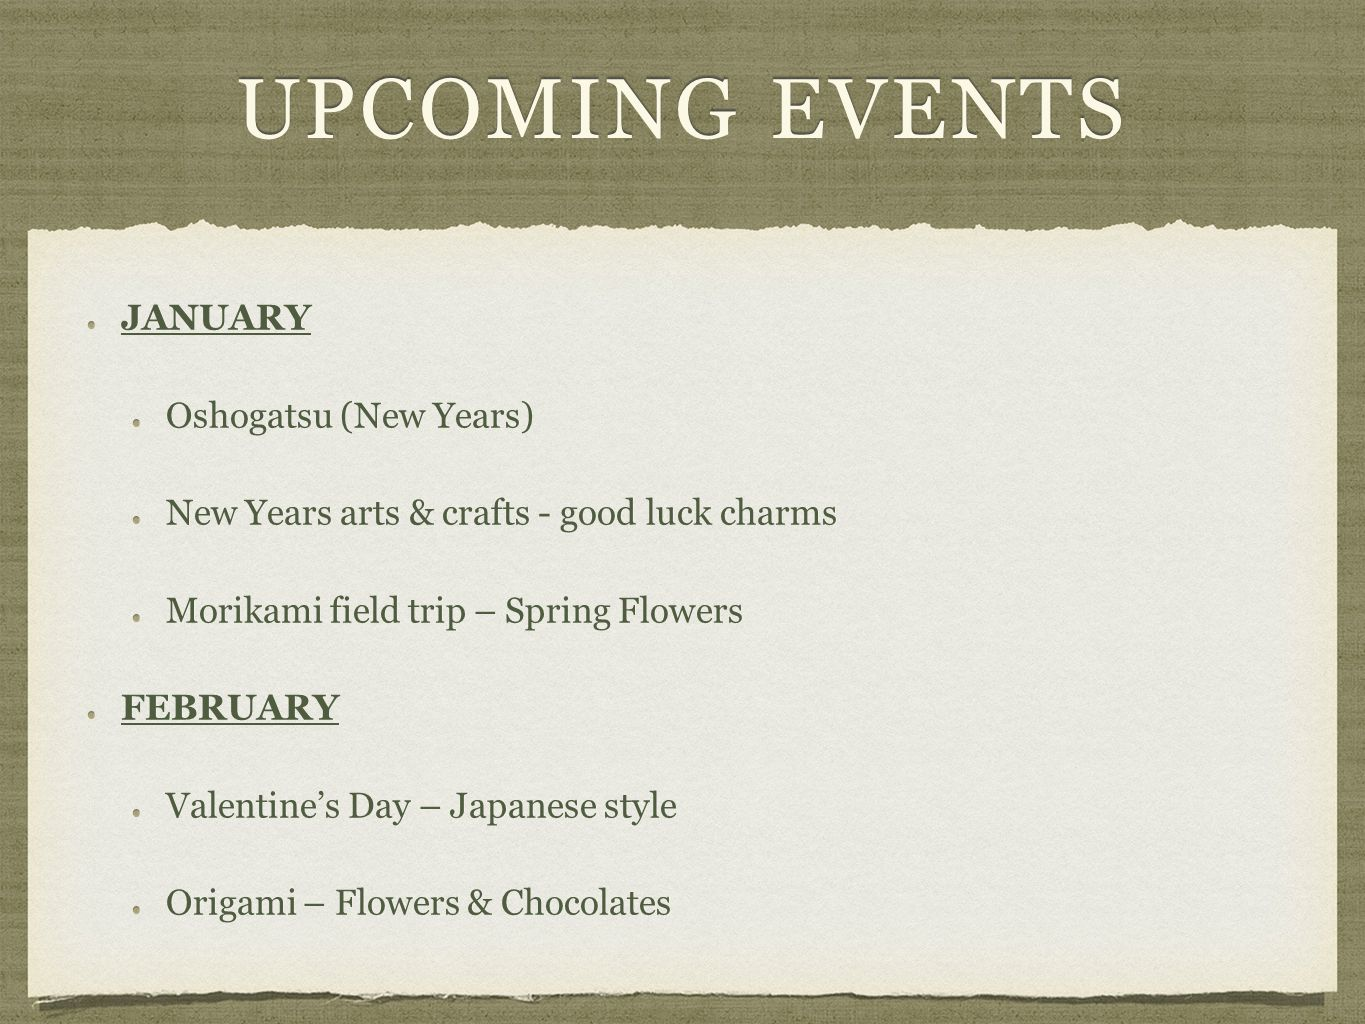 UPCOMING EVENTS MARCH: White DayWhite Day Origami – Teddy Bears, Flowers & ChocolatesOrigami – Teddy Bears, Flowers & ChocolatesAPRIL: Japanese Exam CultureJapanese Exam Culture Epcot Japan *(4/3/15)Epcot Japan *(4/3/15) Club ElectionsClub ElectionsMAY: Election Results via remind 101Election Results via remind 101